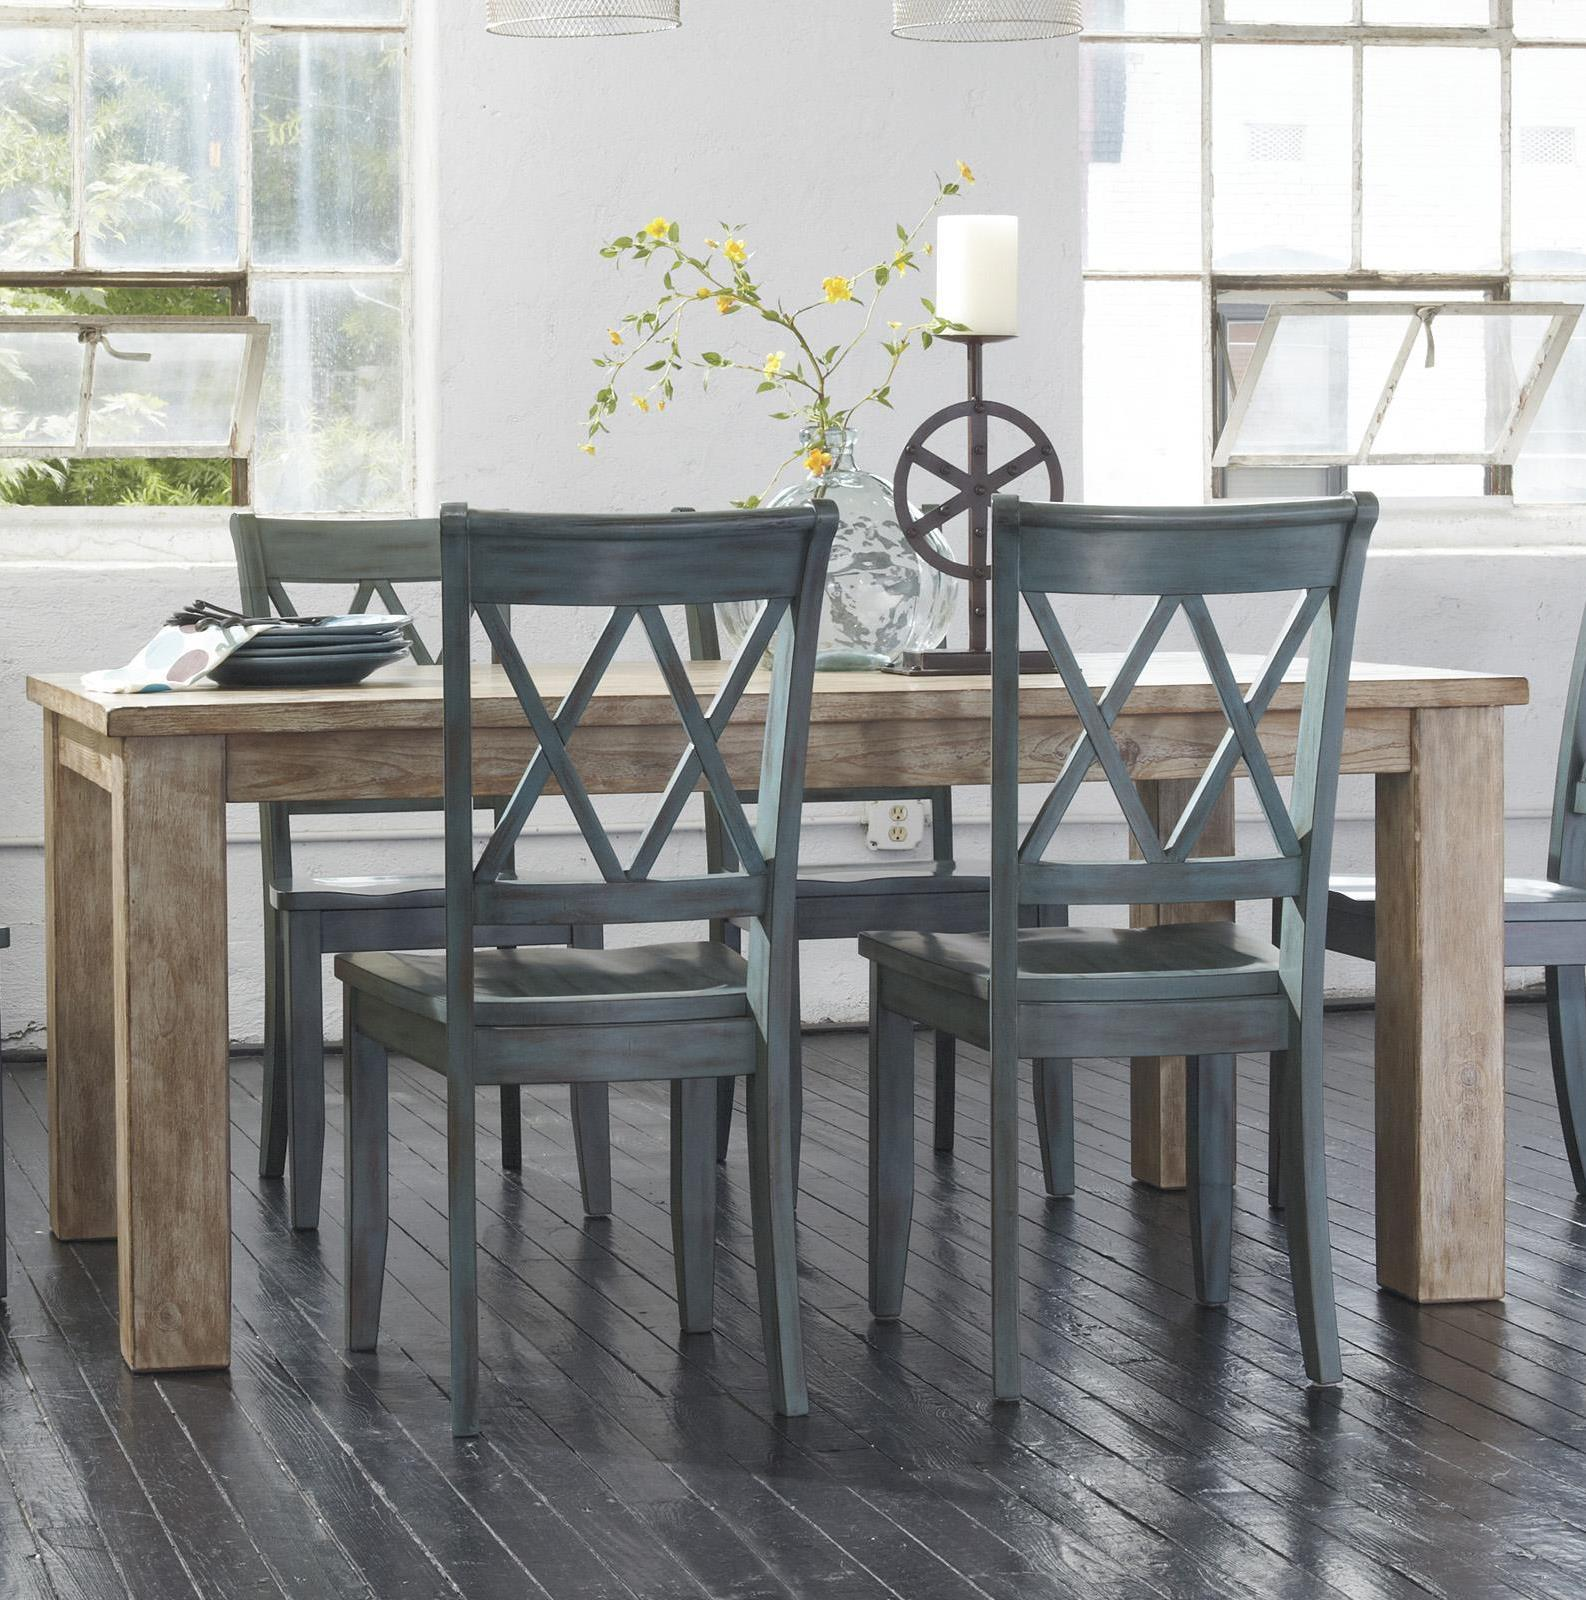 Signature Design by Ashley Mestler 5-Piece Table Set - Item Number: D240 T4 - Signature Design By Ashley Mestler Table With 4 Antique Blue Chairs